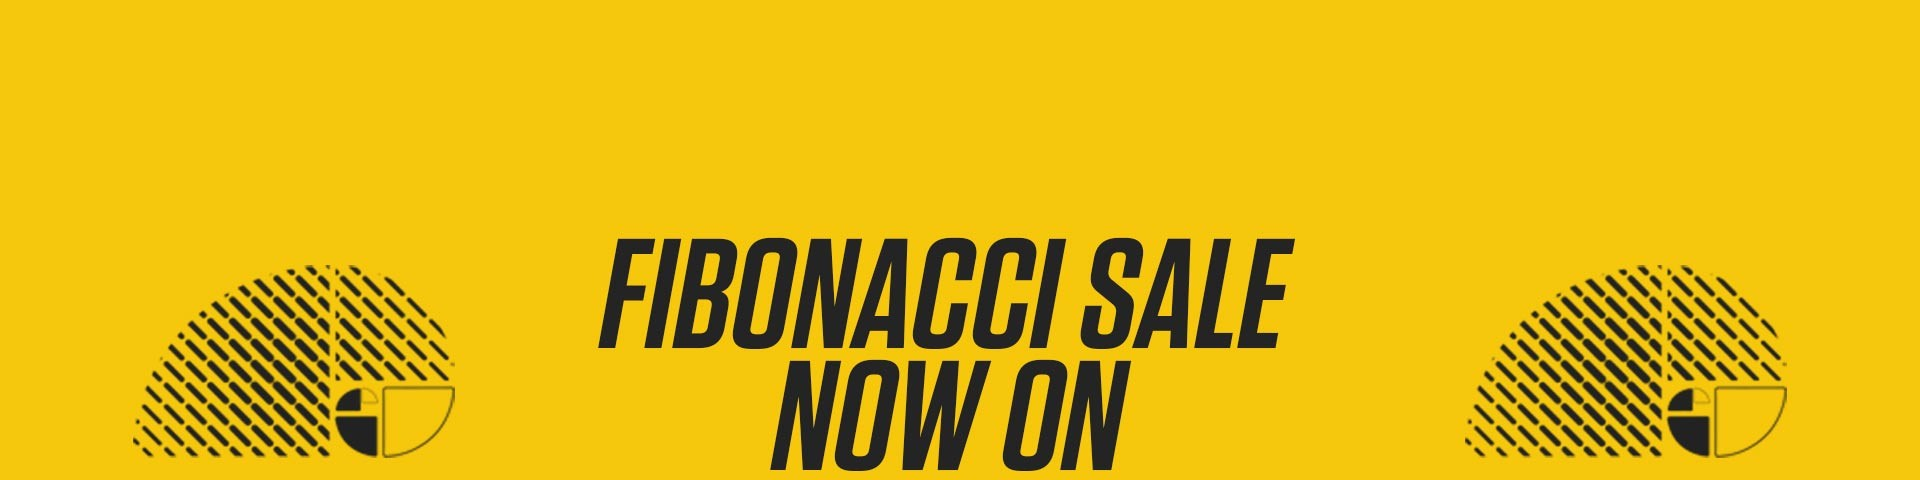 Fibonacci Sale Now On!